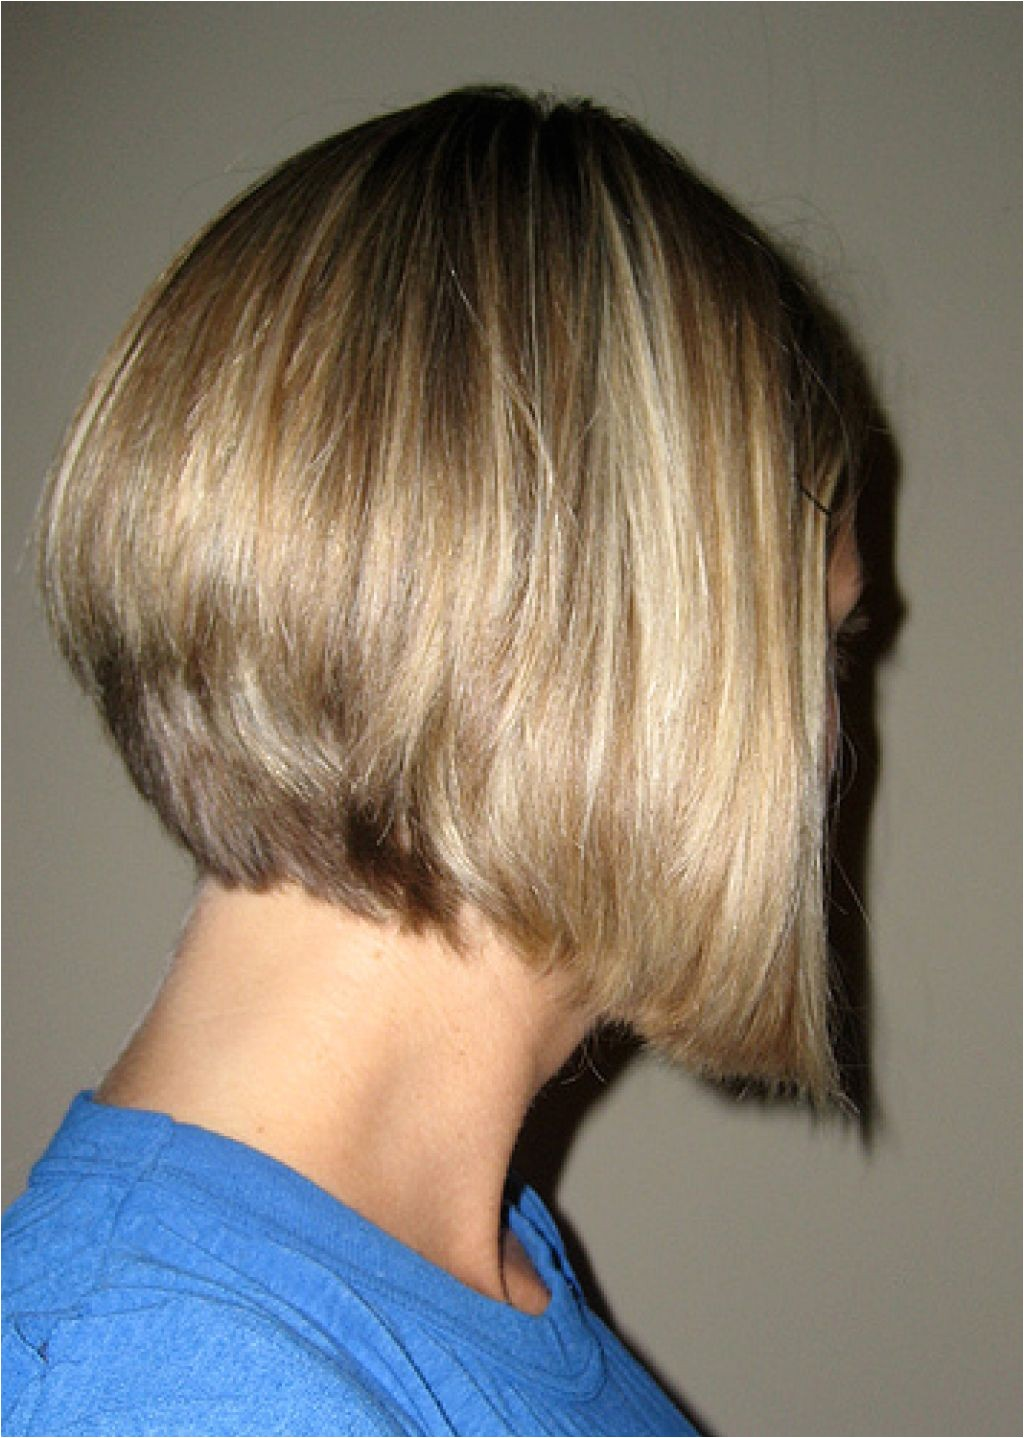 Pictures Of Bob Haircuts From the Back E Checklist that You Should Keep In Mind before